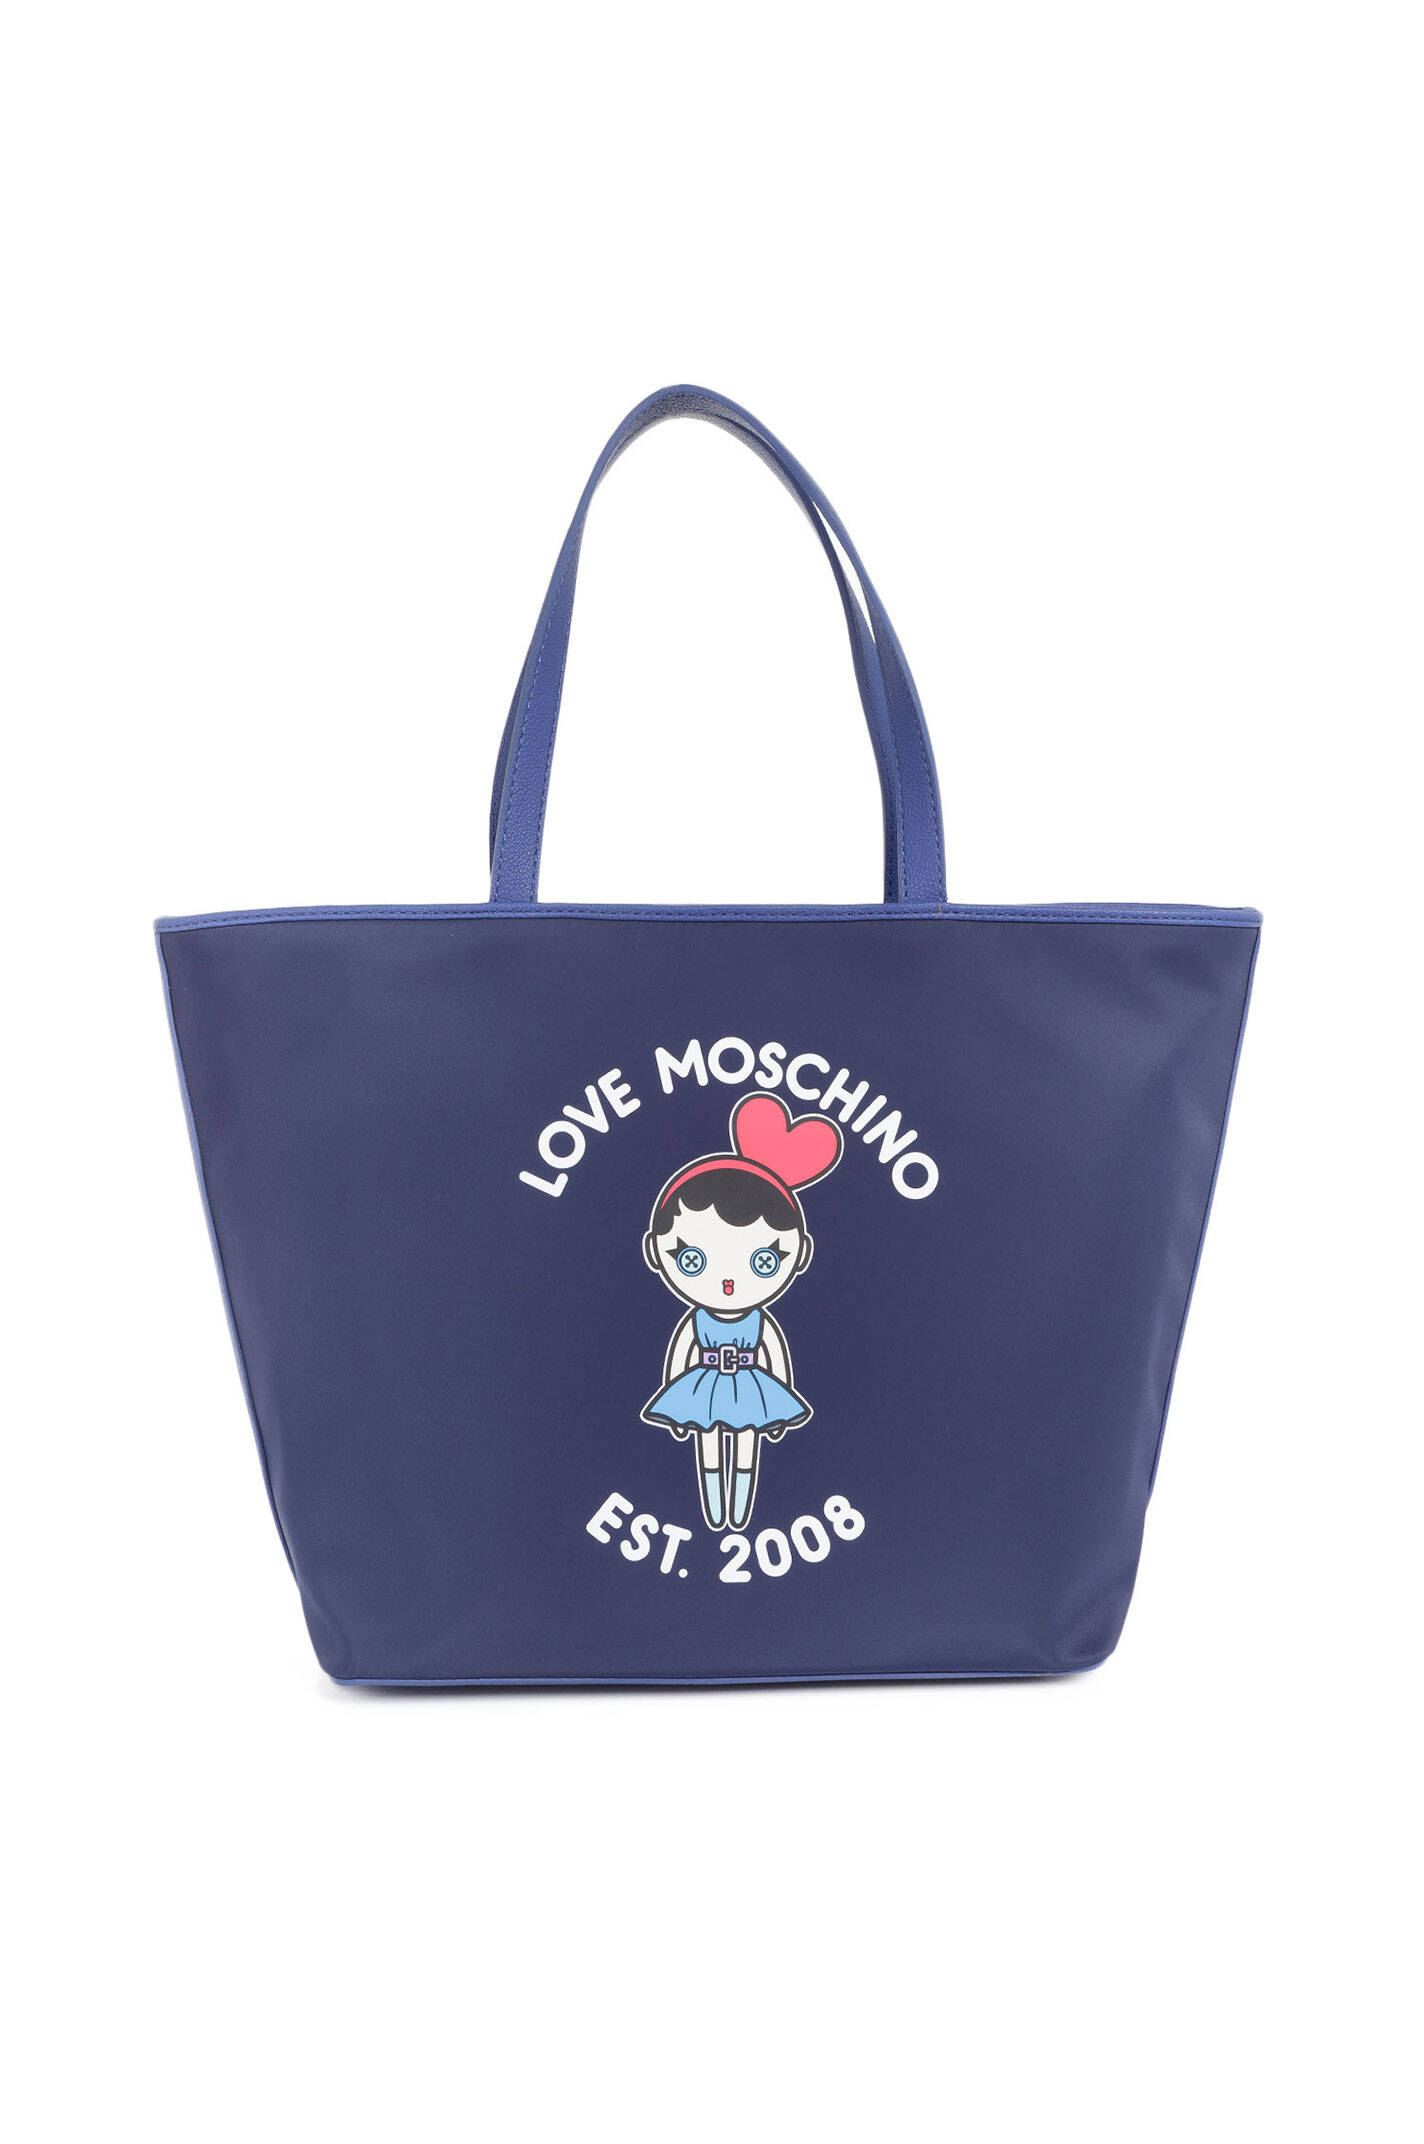 shopper bag love moschino navy blue bags. Black Bedroom Furniture Sets. Home Design Ideas